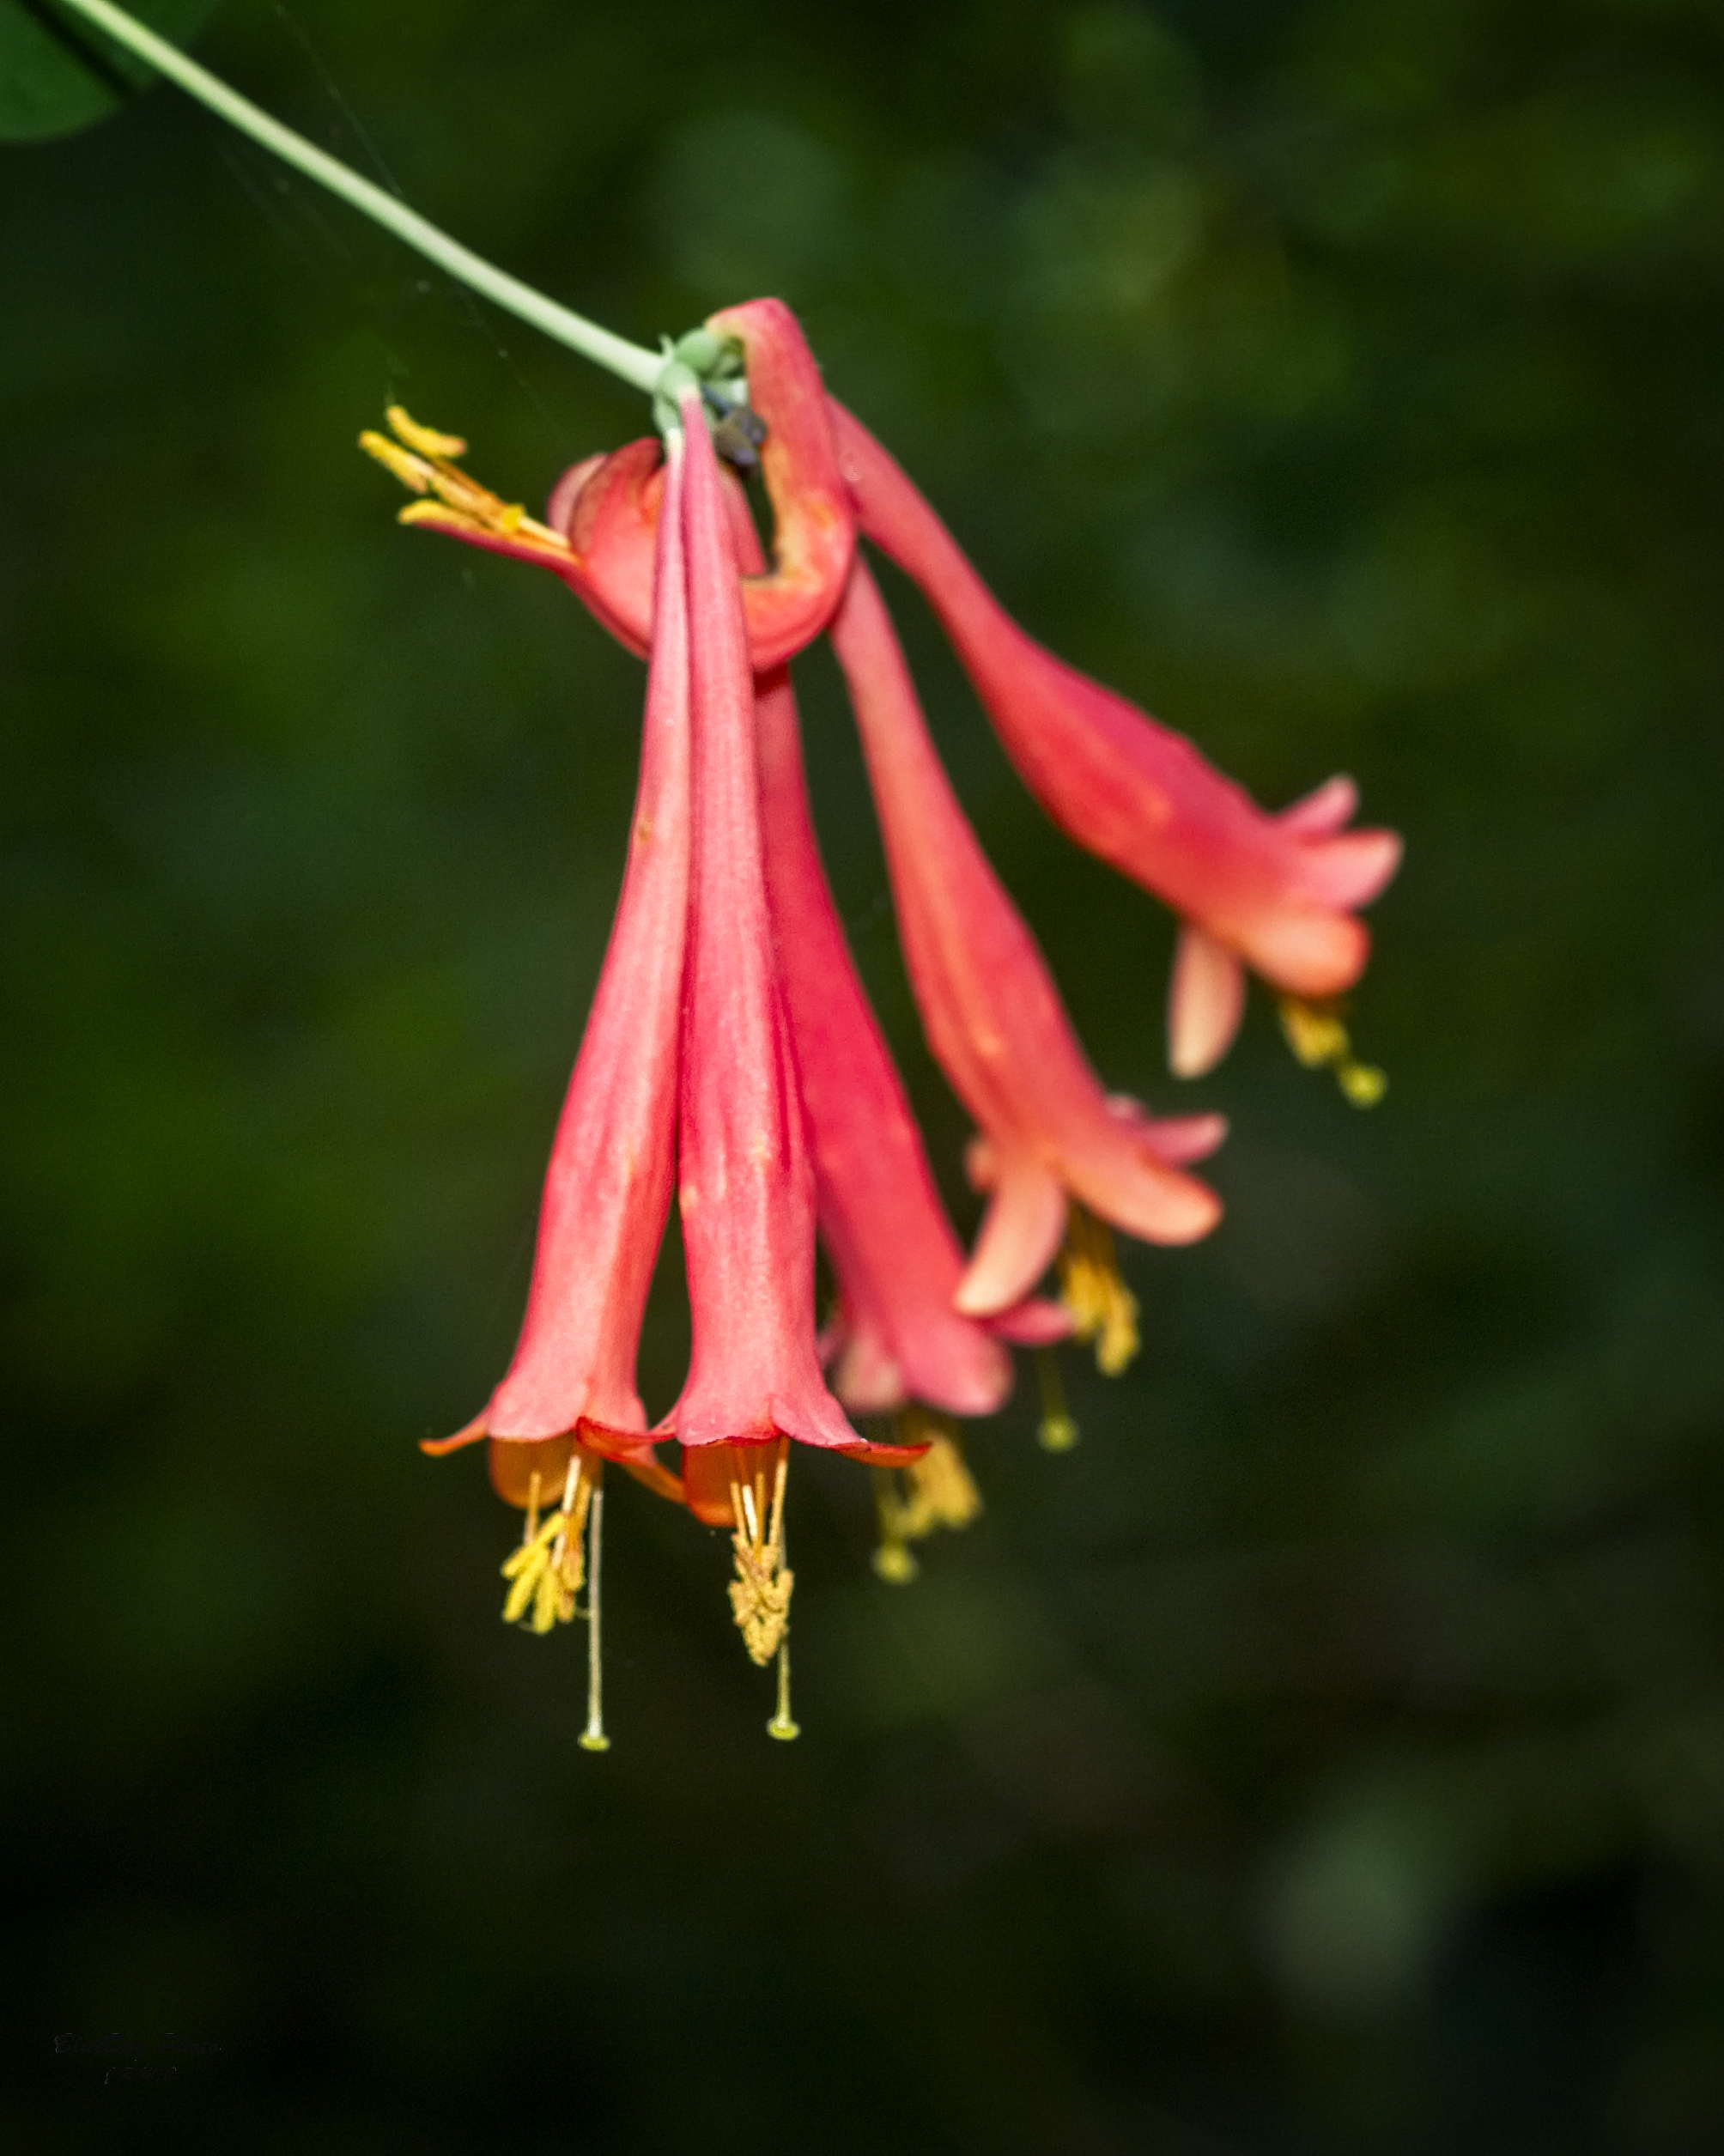 red honeysuckle flower 05-13 2019.jpg